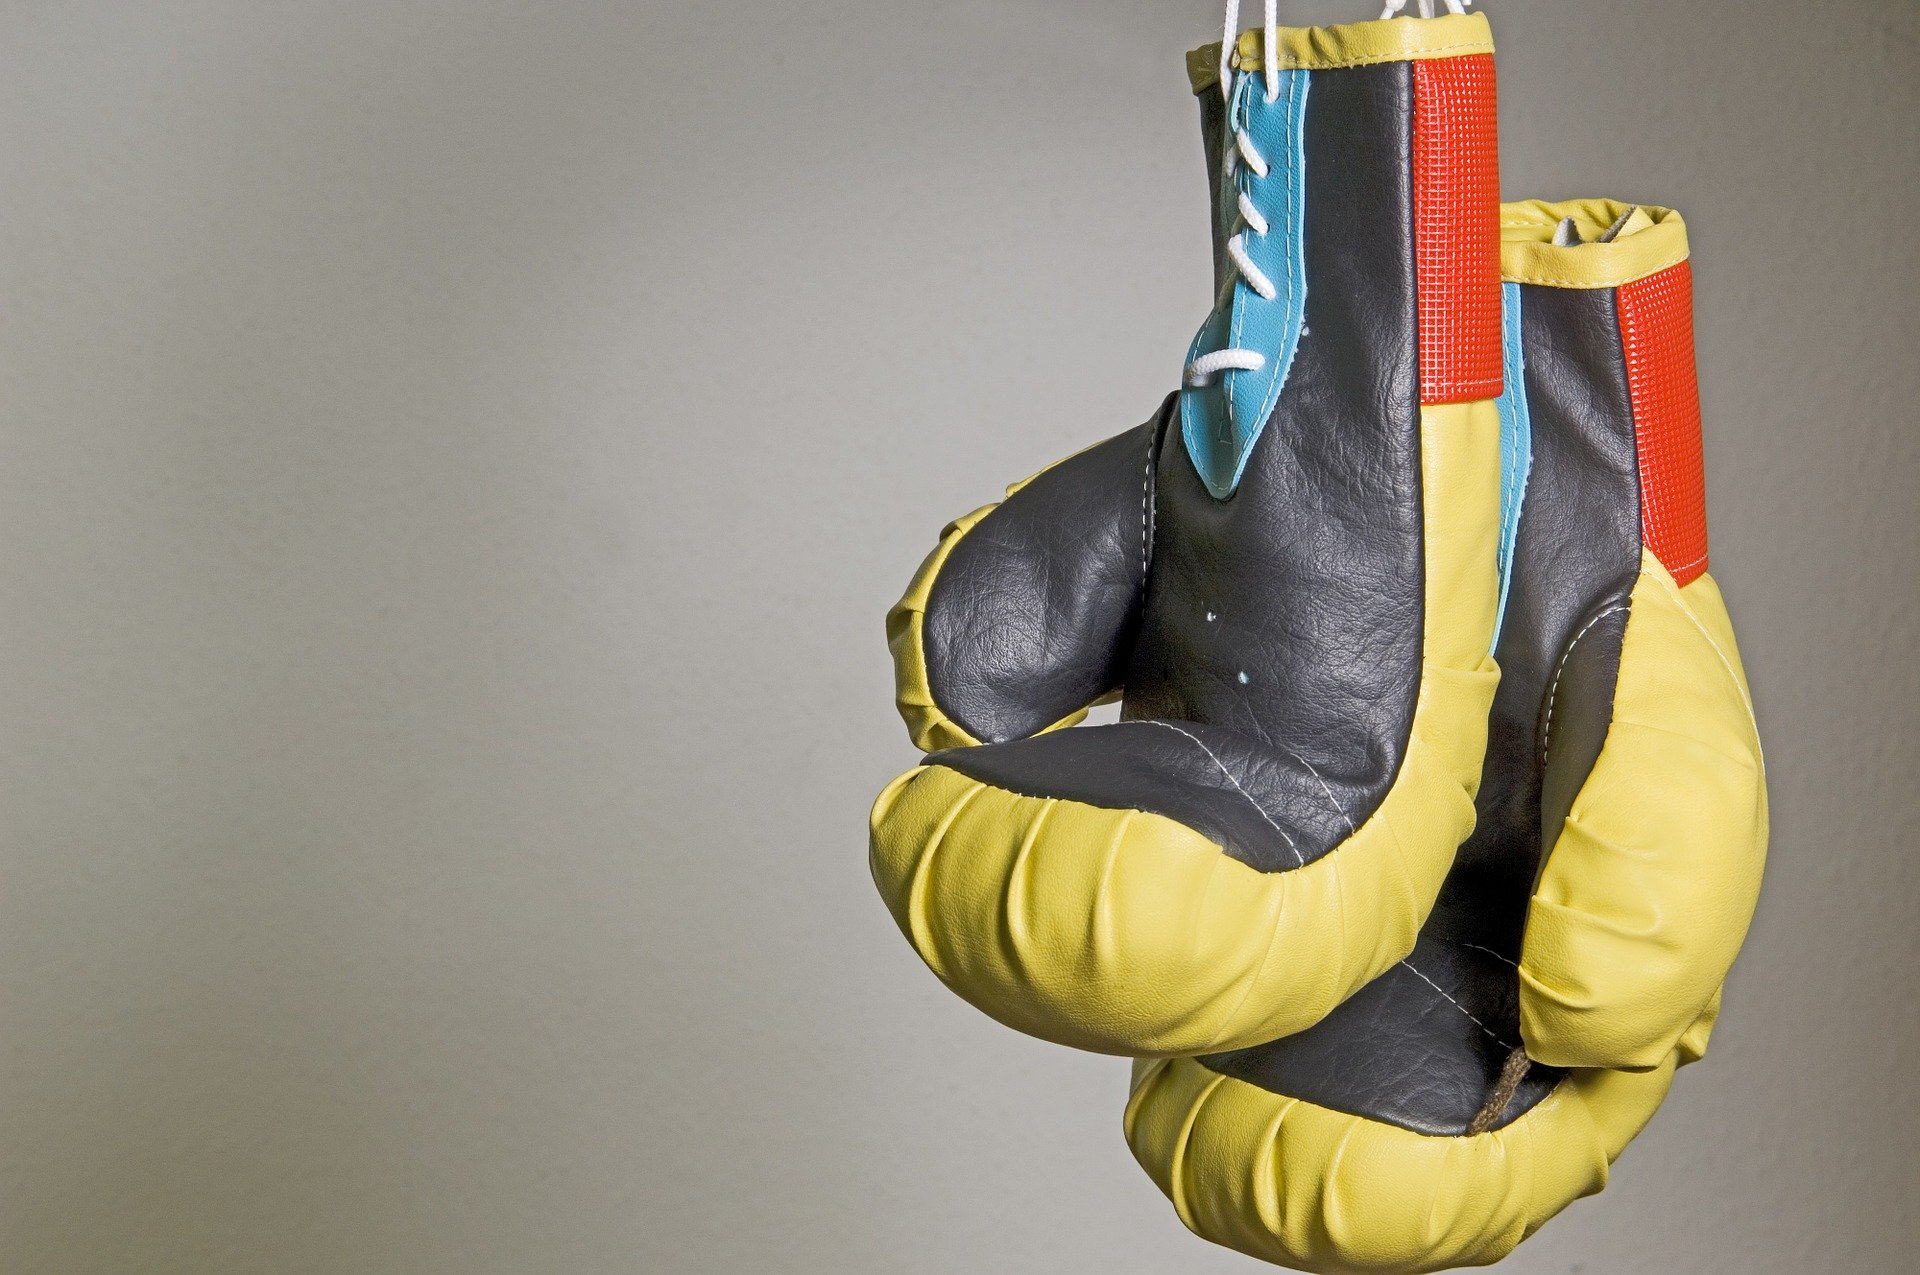 Top 5 Best Cheap Boxing Gloves [Buying Guide]